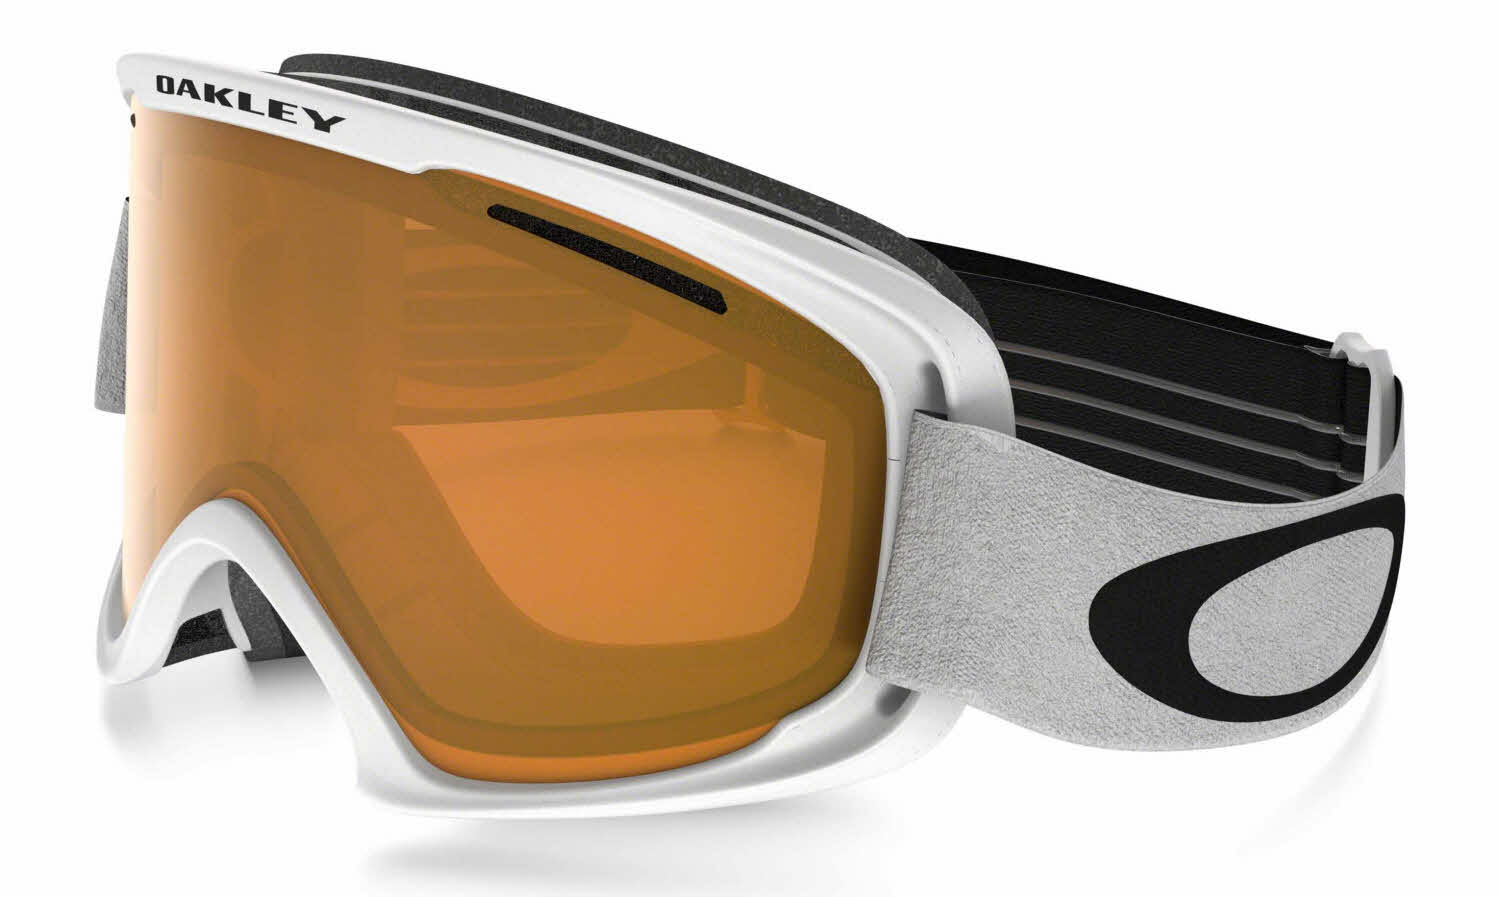 oakley goggle glasses  Oakley Goggles O2 XL Snow Sunglasses